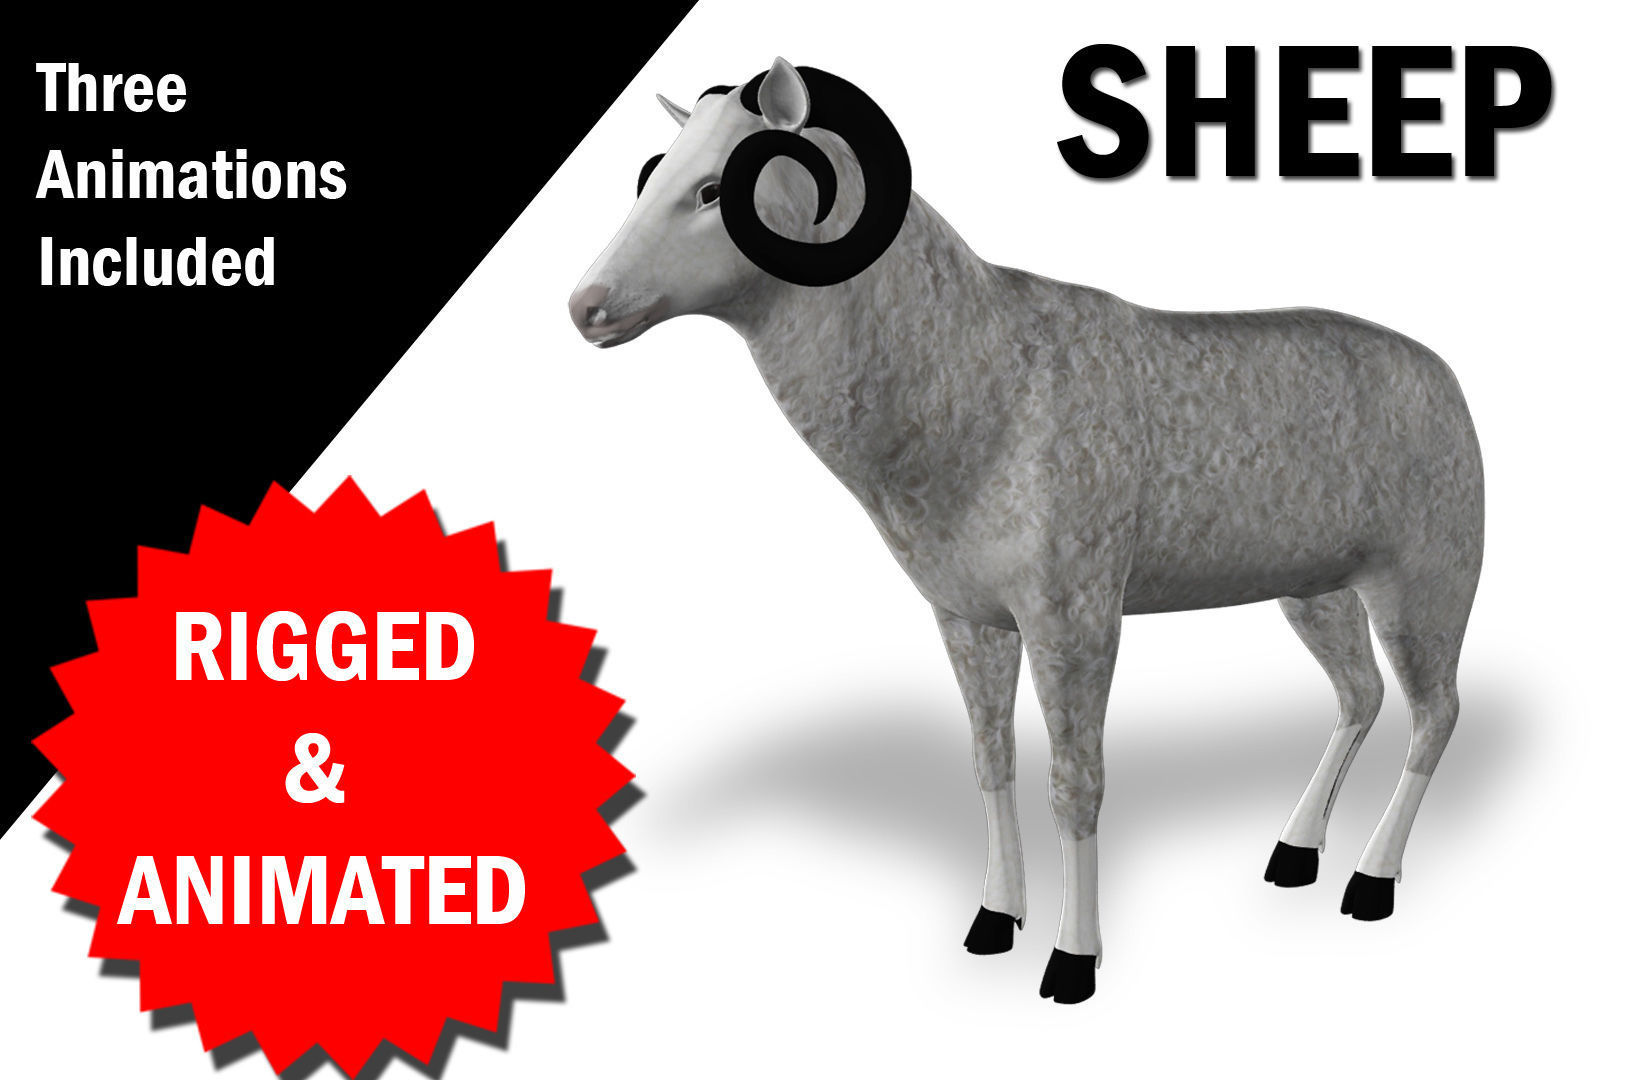 Sheep Rigged and Animated